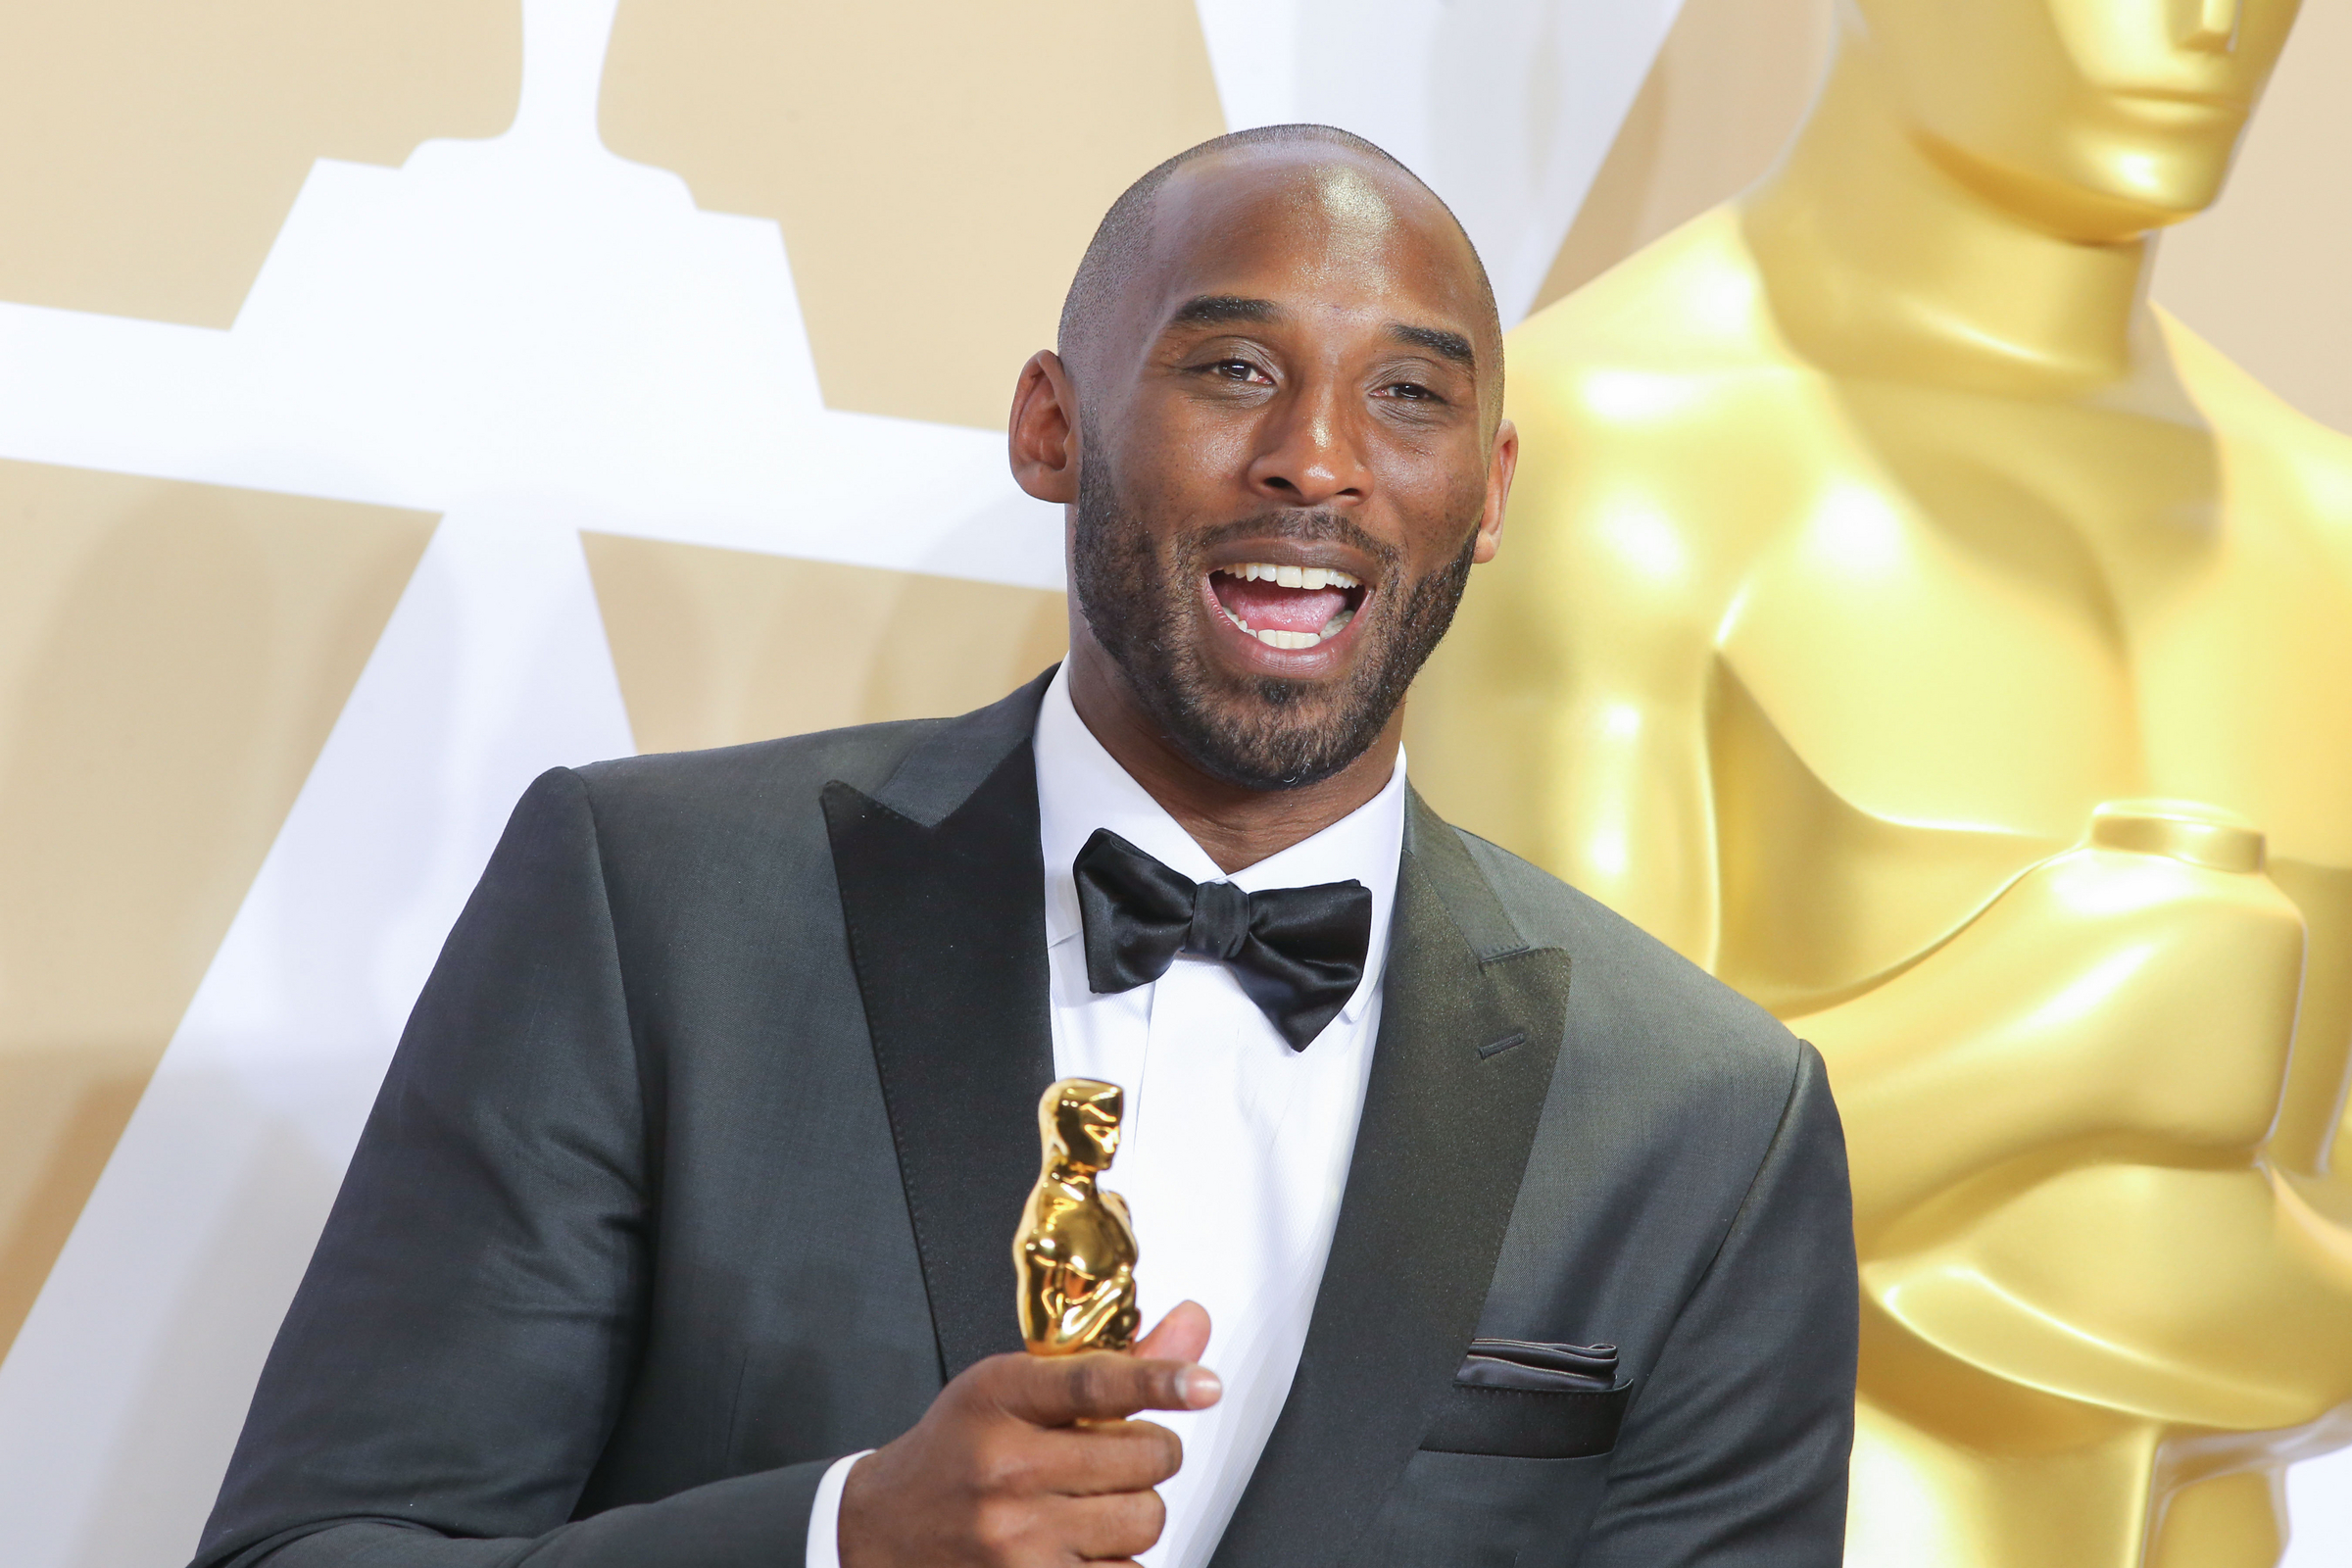 Despite Oscar Win, Kobe Bryant Not Invited To Join Academy